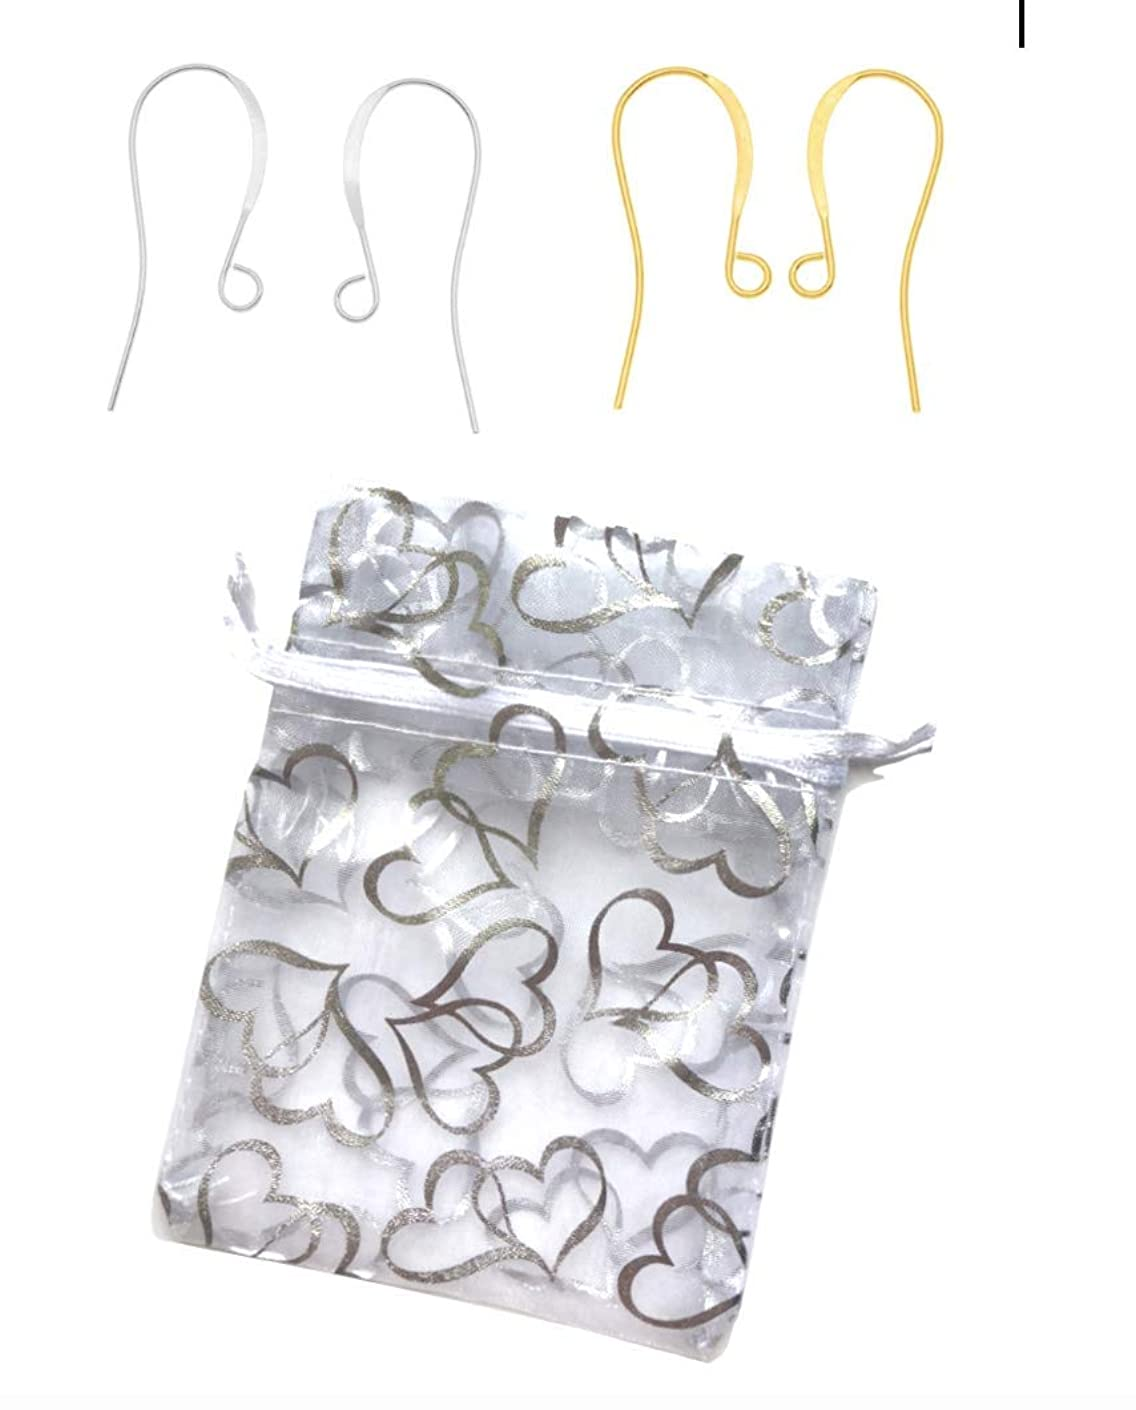 Plated Earring Hooks, Silver & Gold 25 Pairs of Silver + 2 Pairs of Gold + Hearts Jewelry Bag